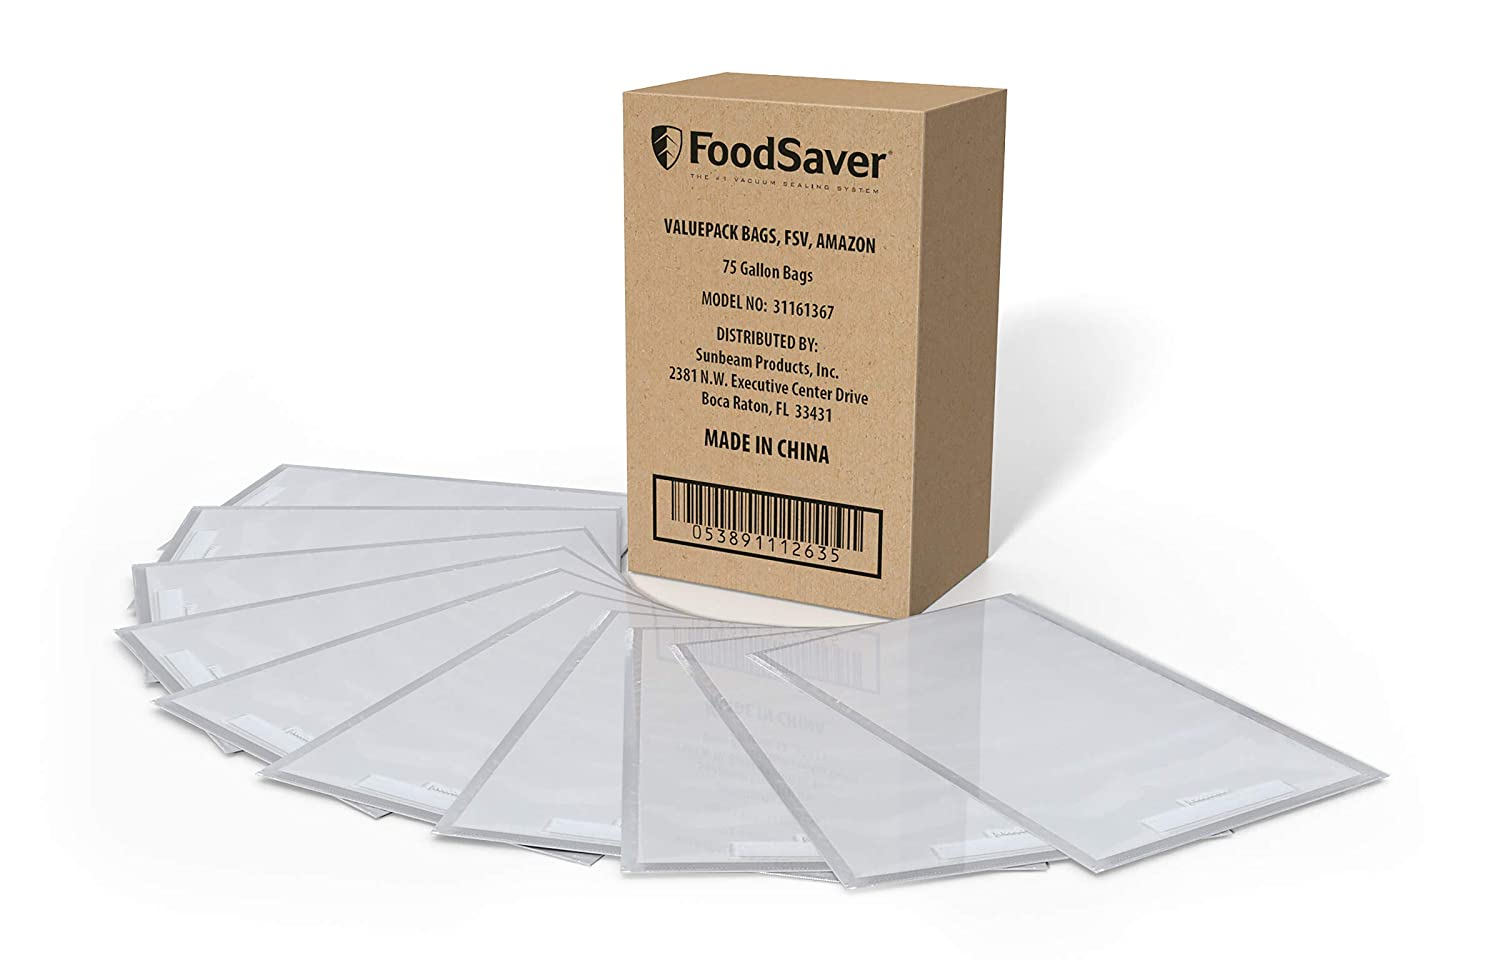 FoodSaver 1-Gallon Vacuum Sealer, Bags, 75 Count | BPA-Free, Commercial Grade for Food Storage and Sous Vide